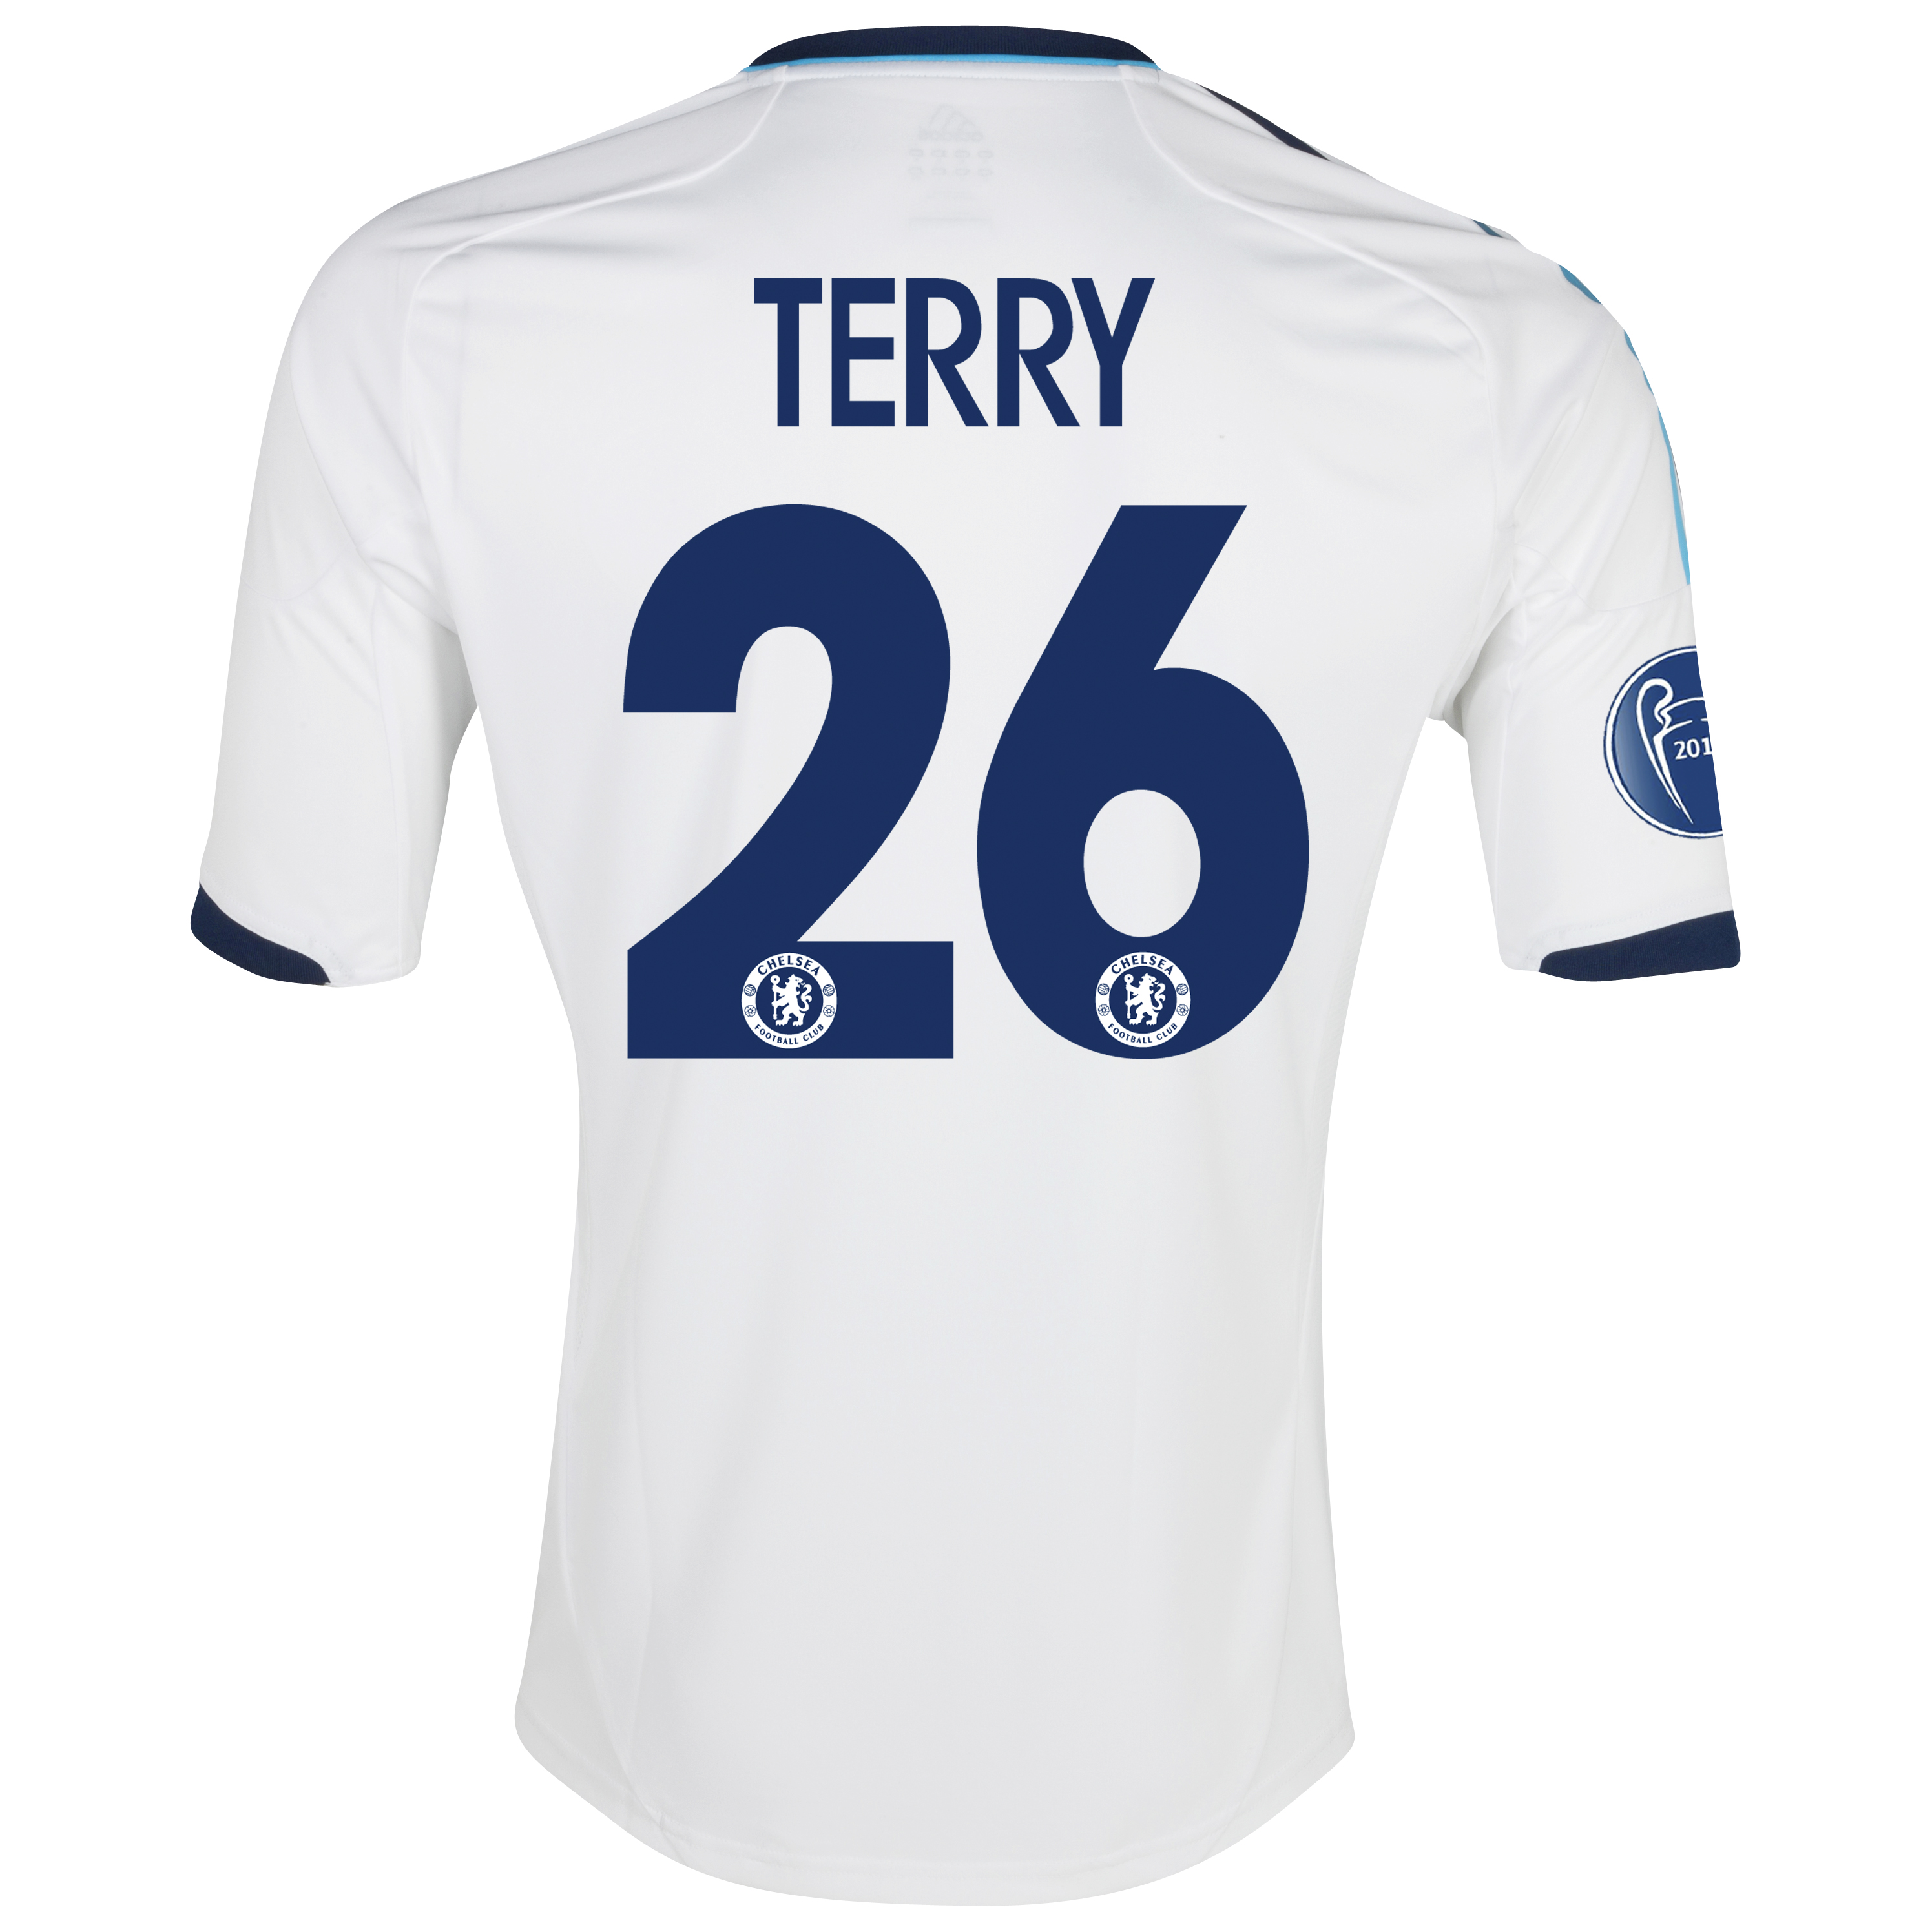 Chelsea UEFA Champions League Shirt Away Shirt 2012/13 - with Terry 26 printing